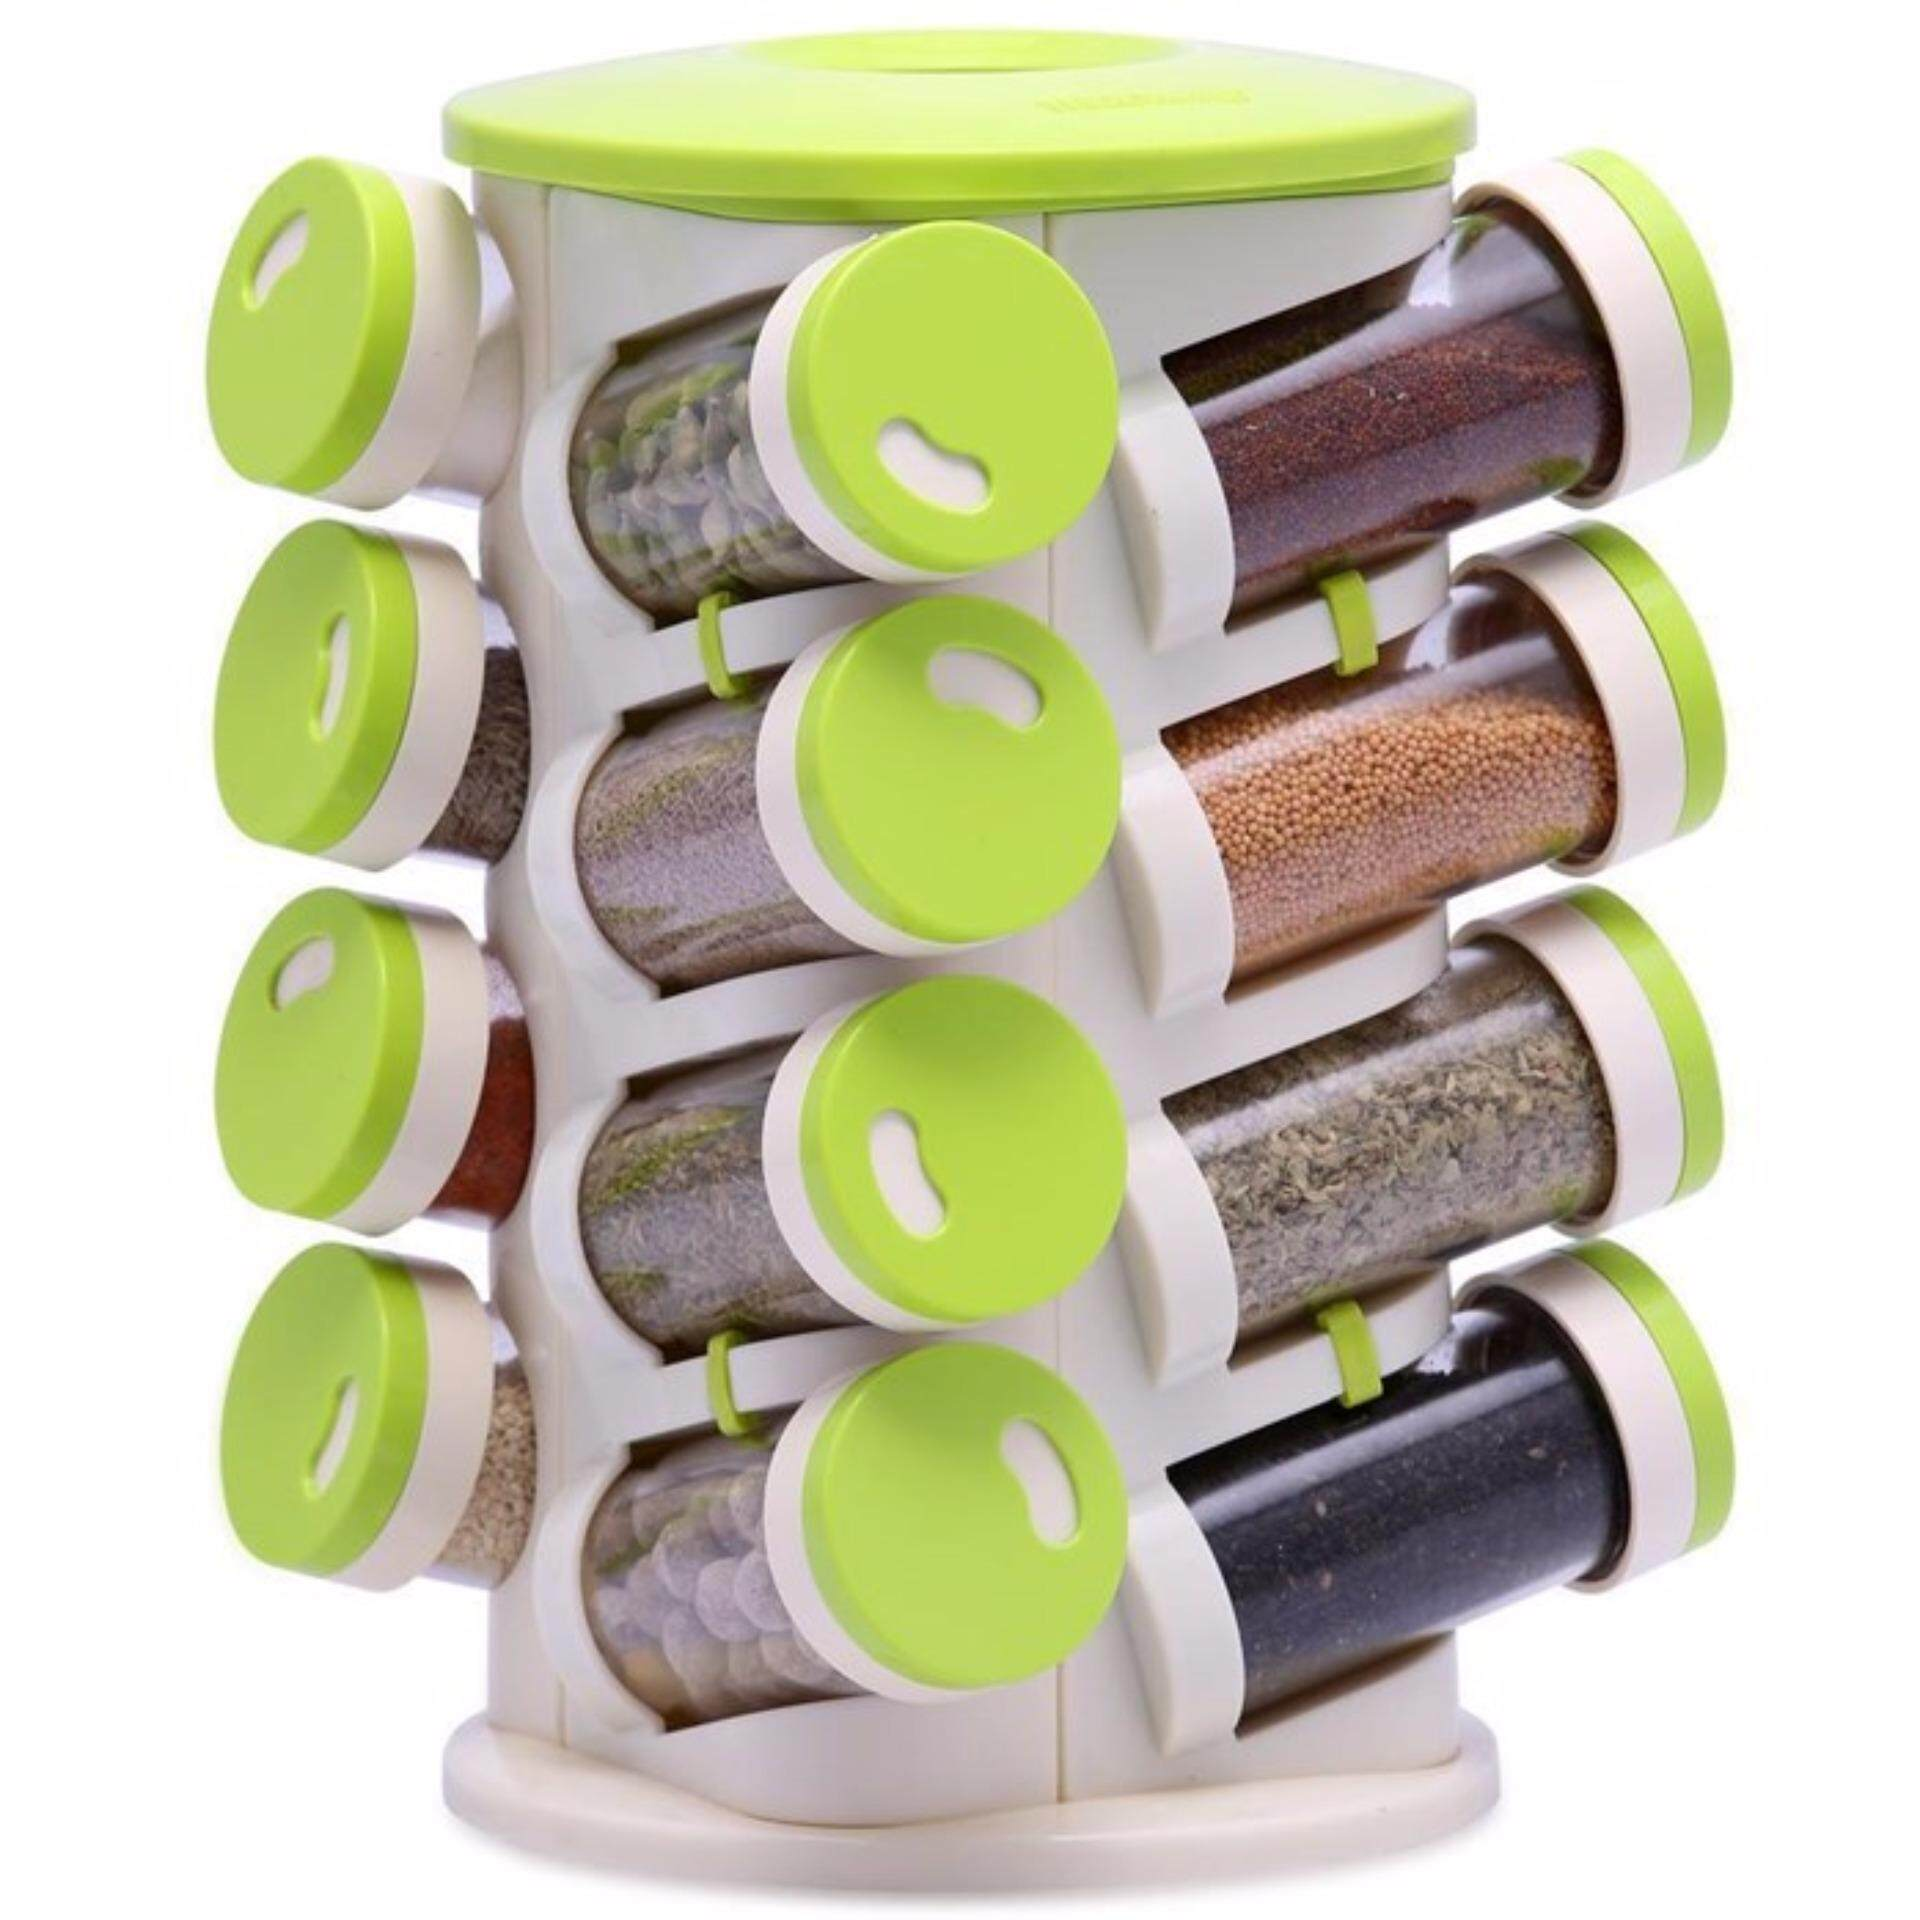 16 IN 1 Spiral Spice Rack With Cutlery Holder Storage Box Salt Spices Jar Case Condiment Bottles Pots Acrylic Kitchen Tools